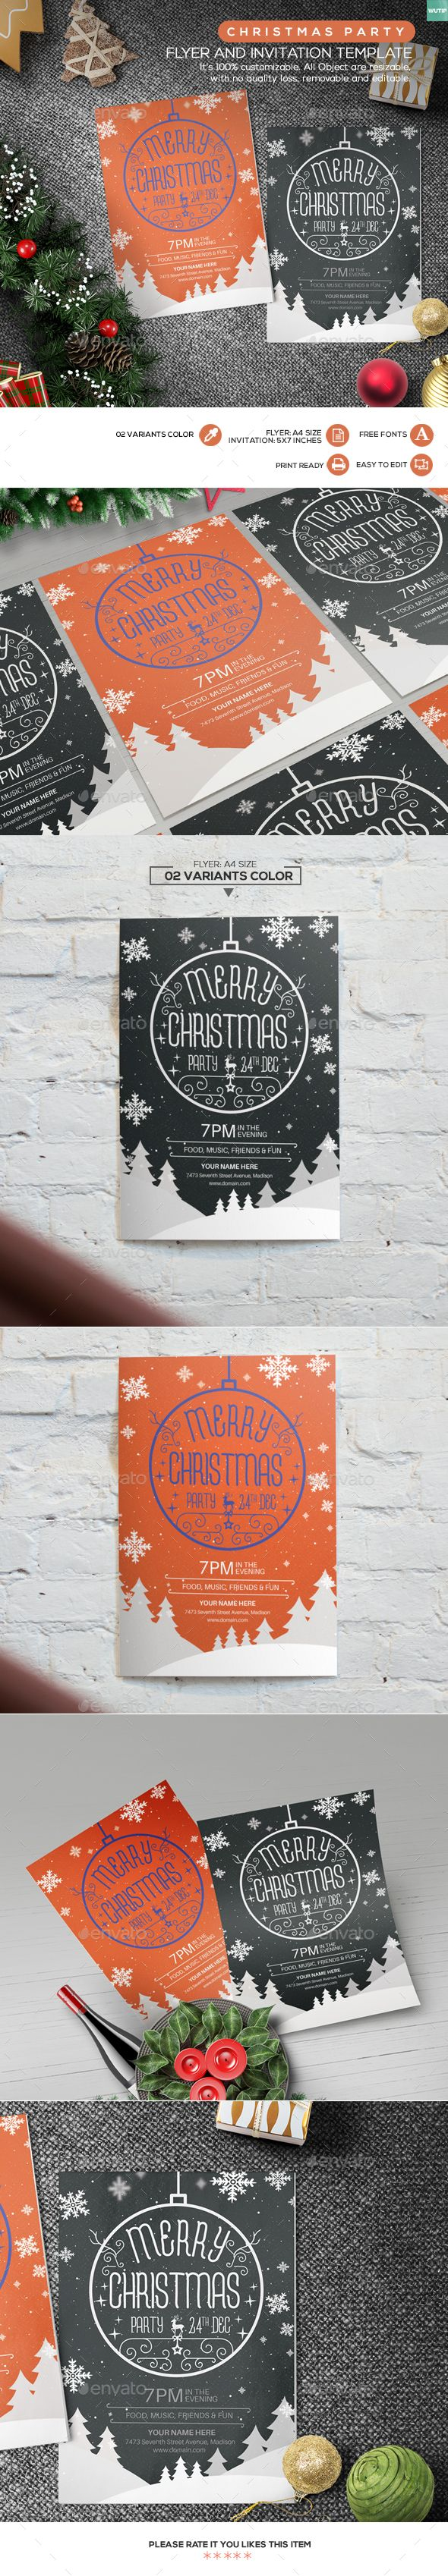 Christmas Party Flyer and Invitation Template PSD #design Download: http://graphicriver.net/item/christmas-party-flyer-and-invitation-template/13643037?ref=ksioks